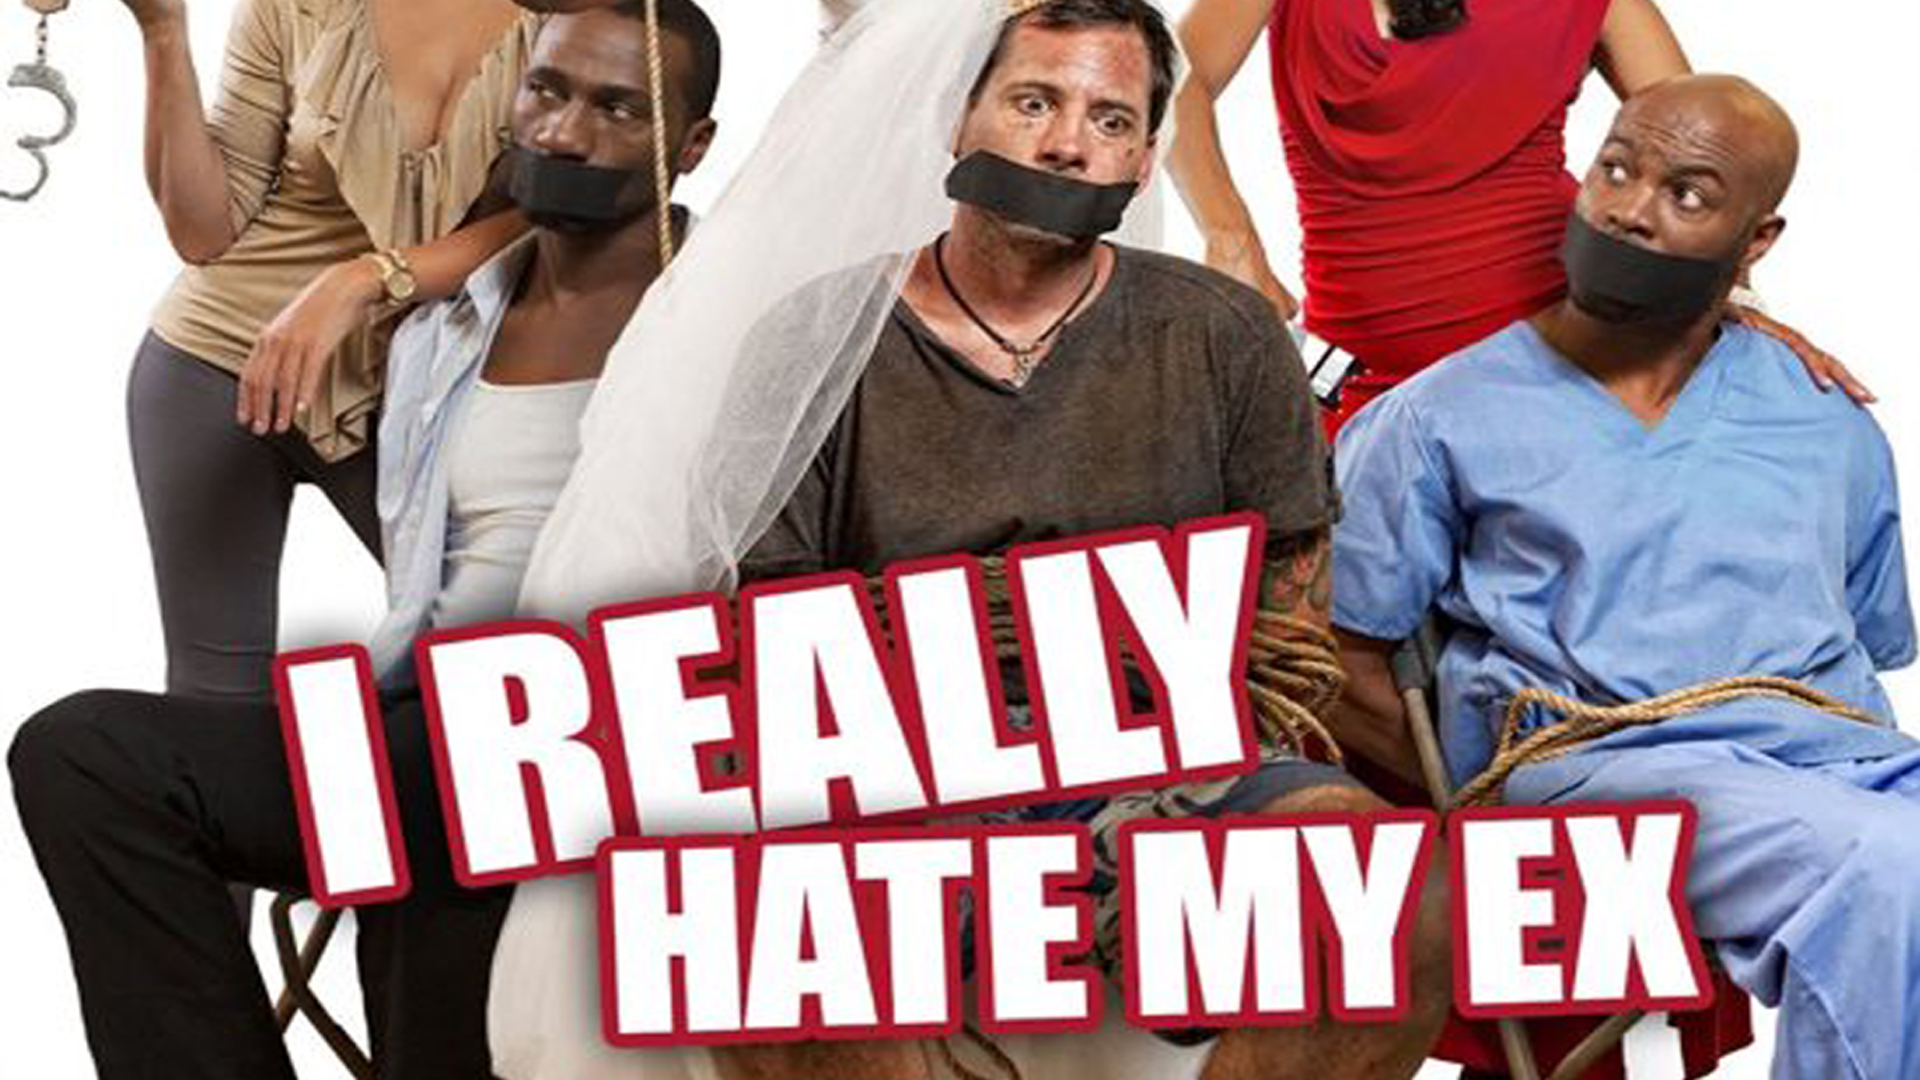 I Really Hate My Ex on Amazon Prime Video UK